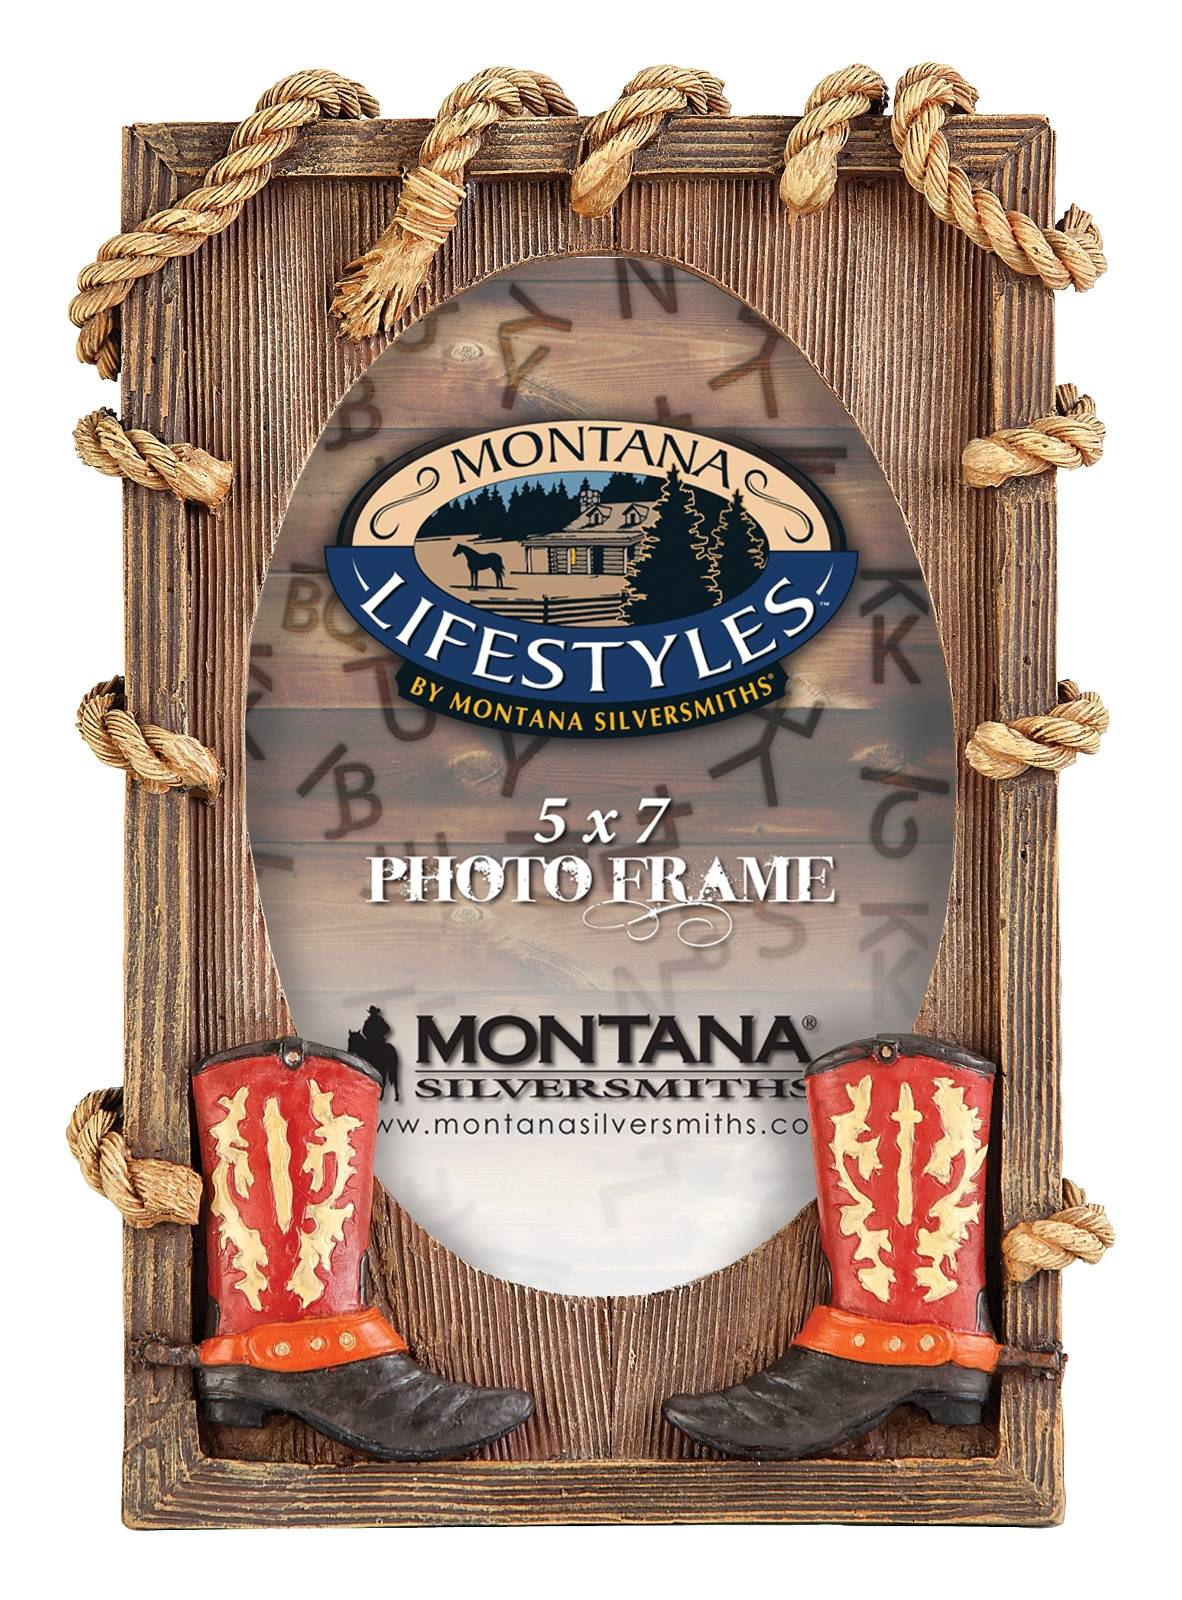 Montana Silversmiths Rope n' Boots Photo Frame